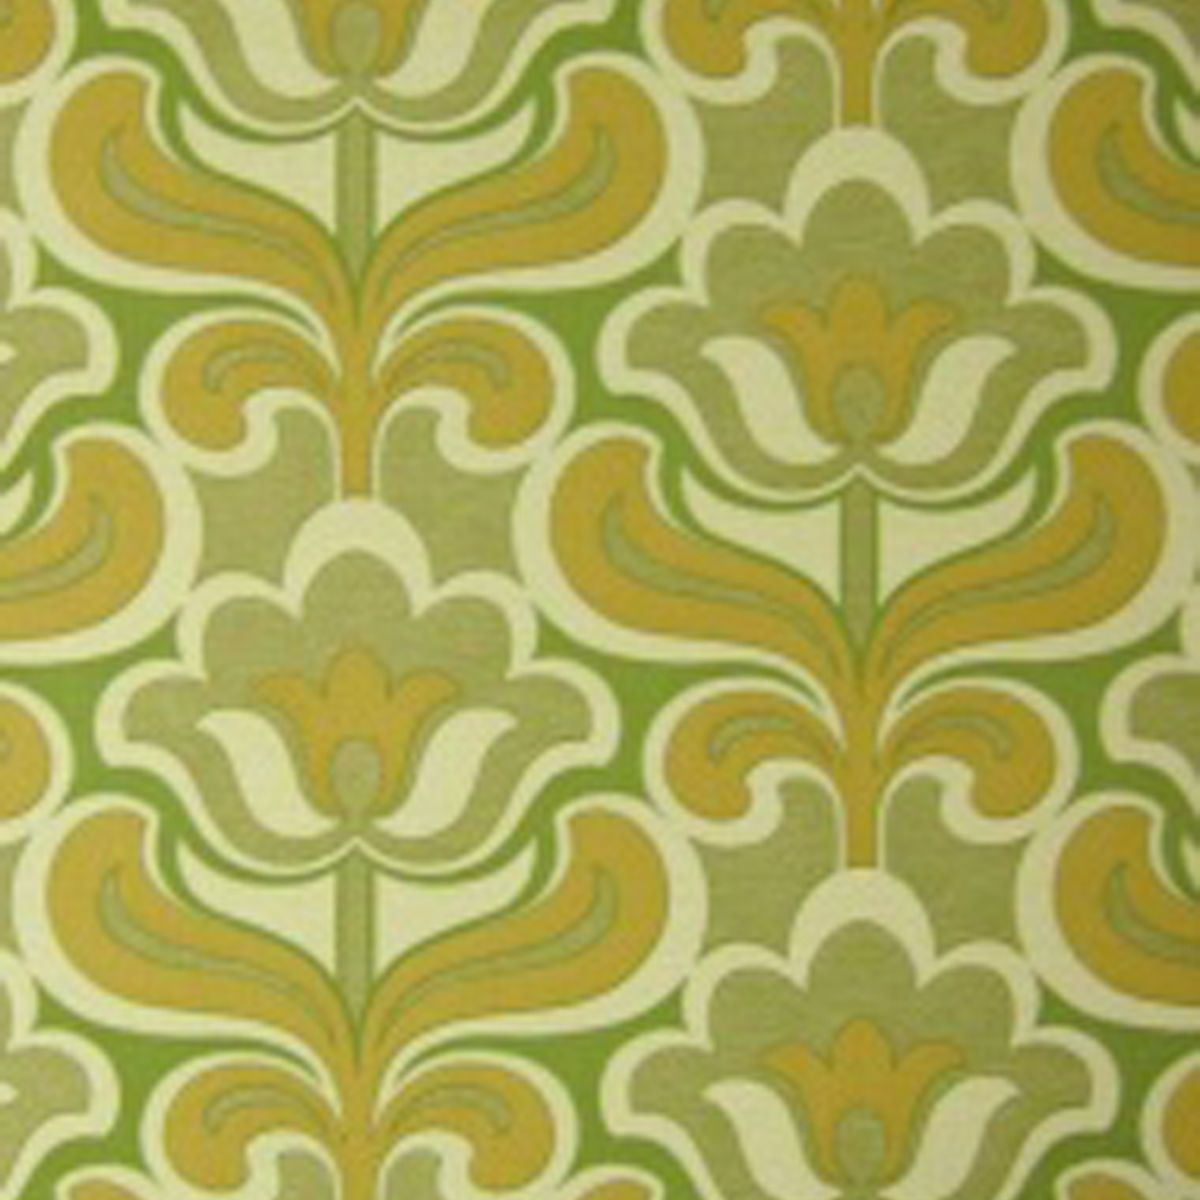 Rasch apples vinyl kitchen wallpaper 824506 cream cut price - Original Mid Century Modern Geo Floral Wallpaper Perfect Vintage Green 1970s